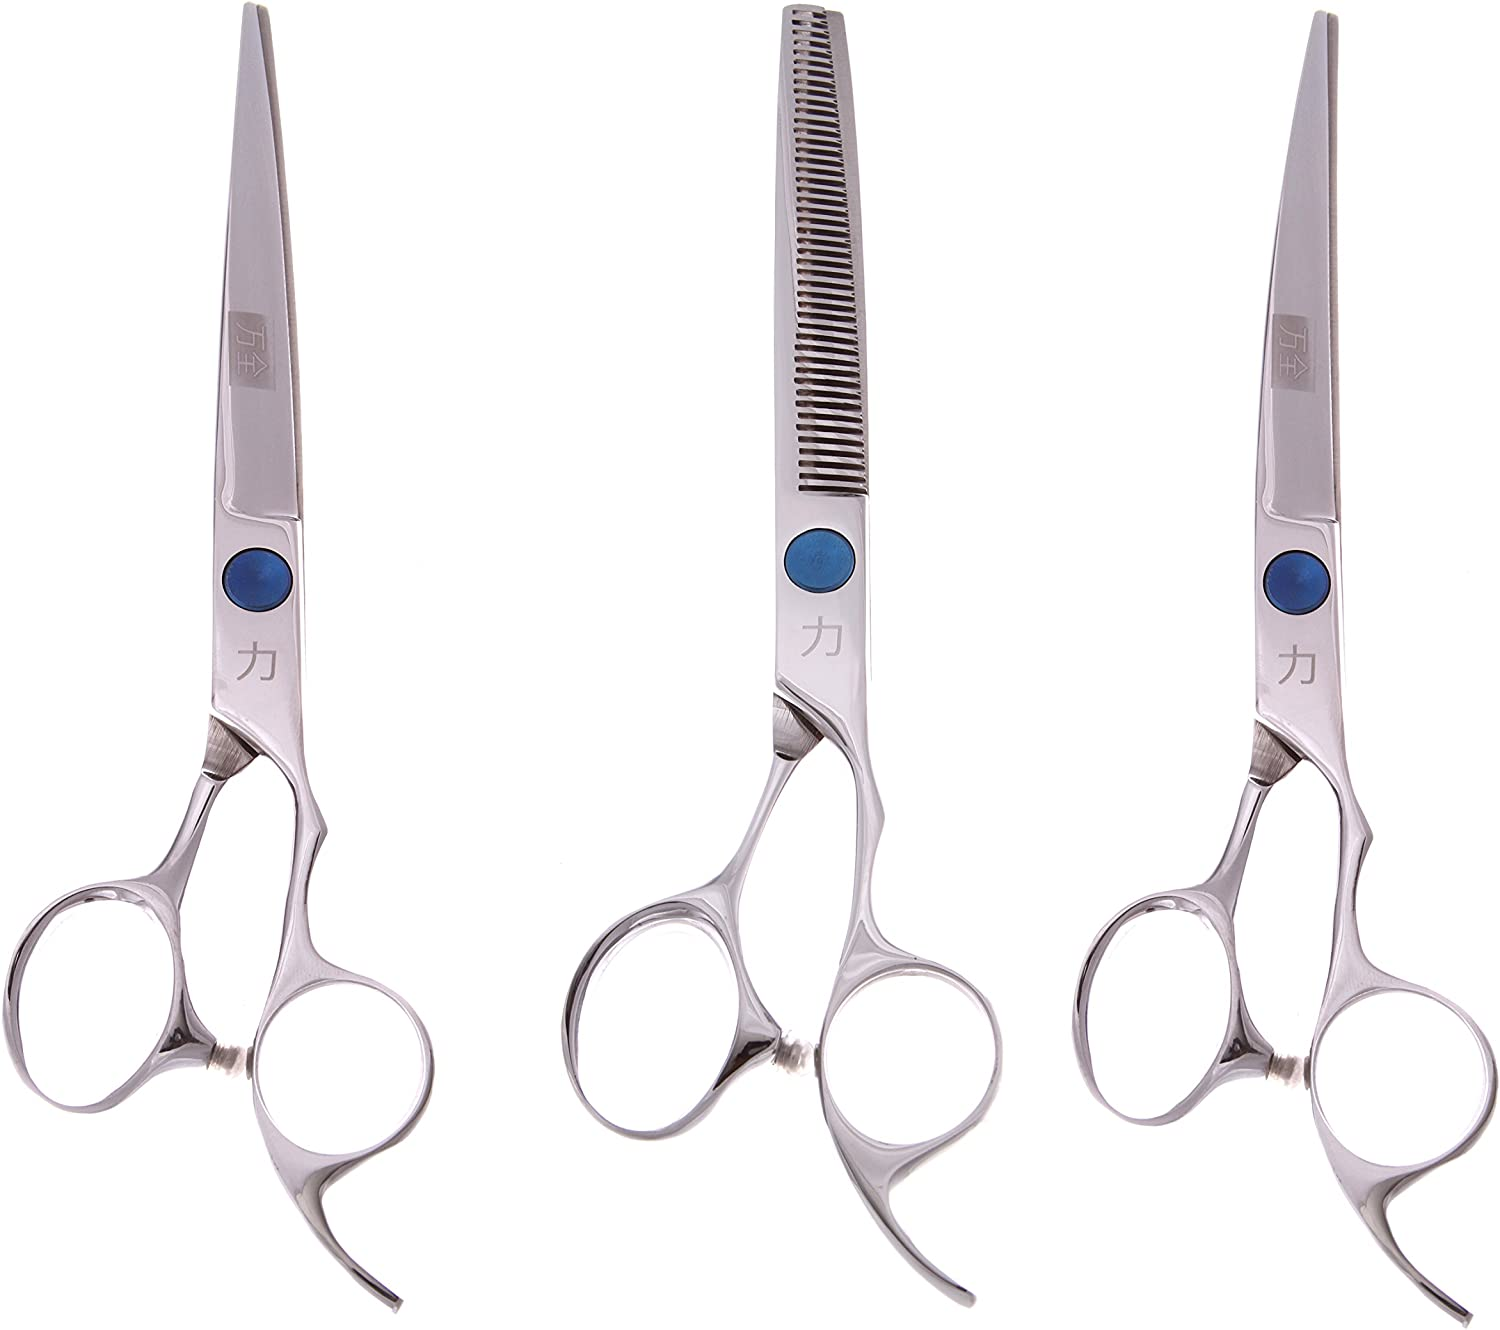 ShearsDirect 3Piece Cutting Shear Set, Includes 8.0Inch Straight, 8.0Inch Curved and 7.0Inch 58 Teeth Blender